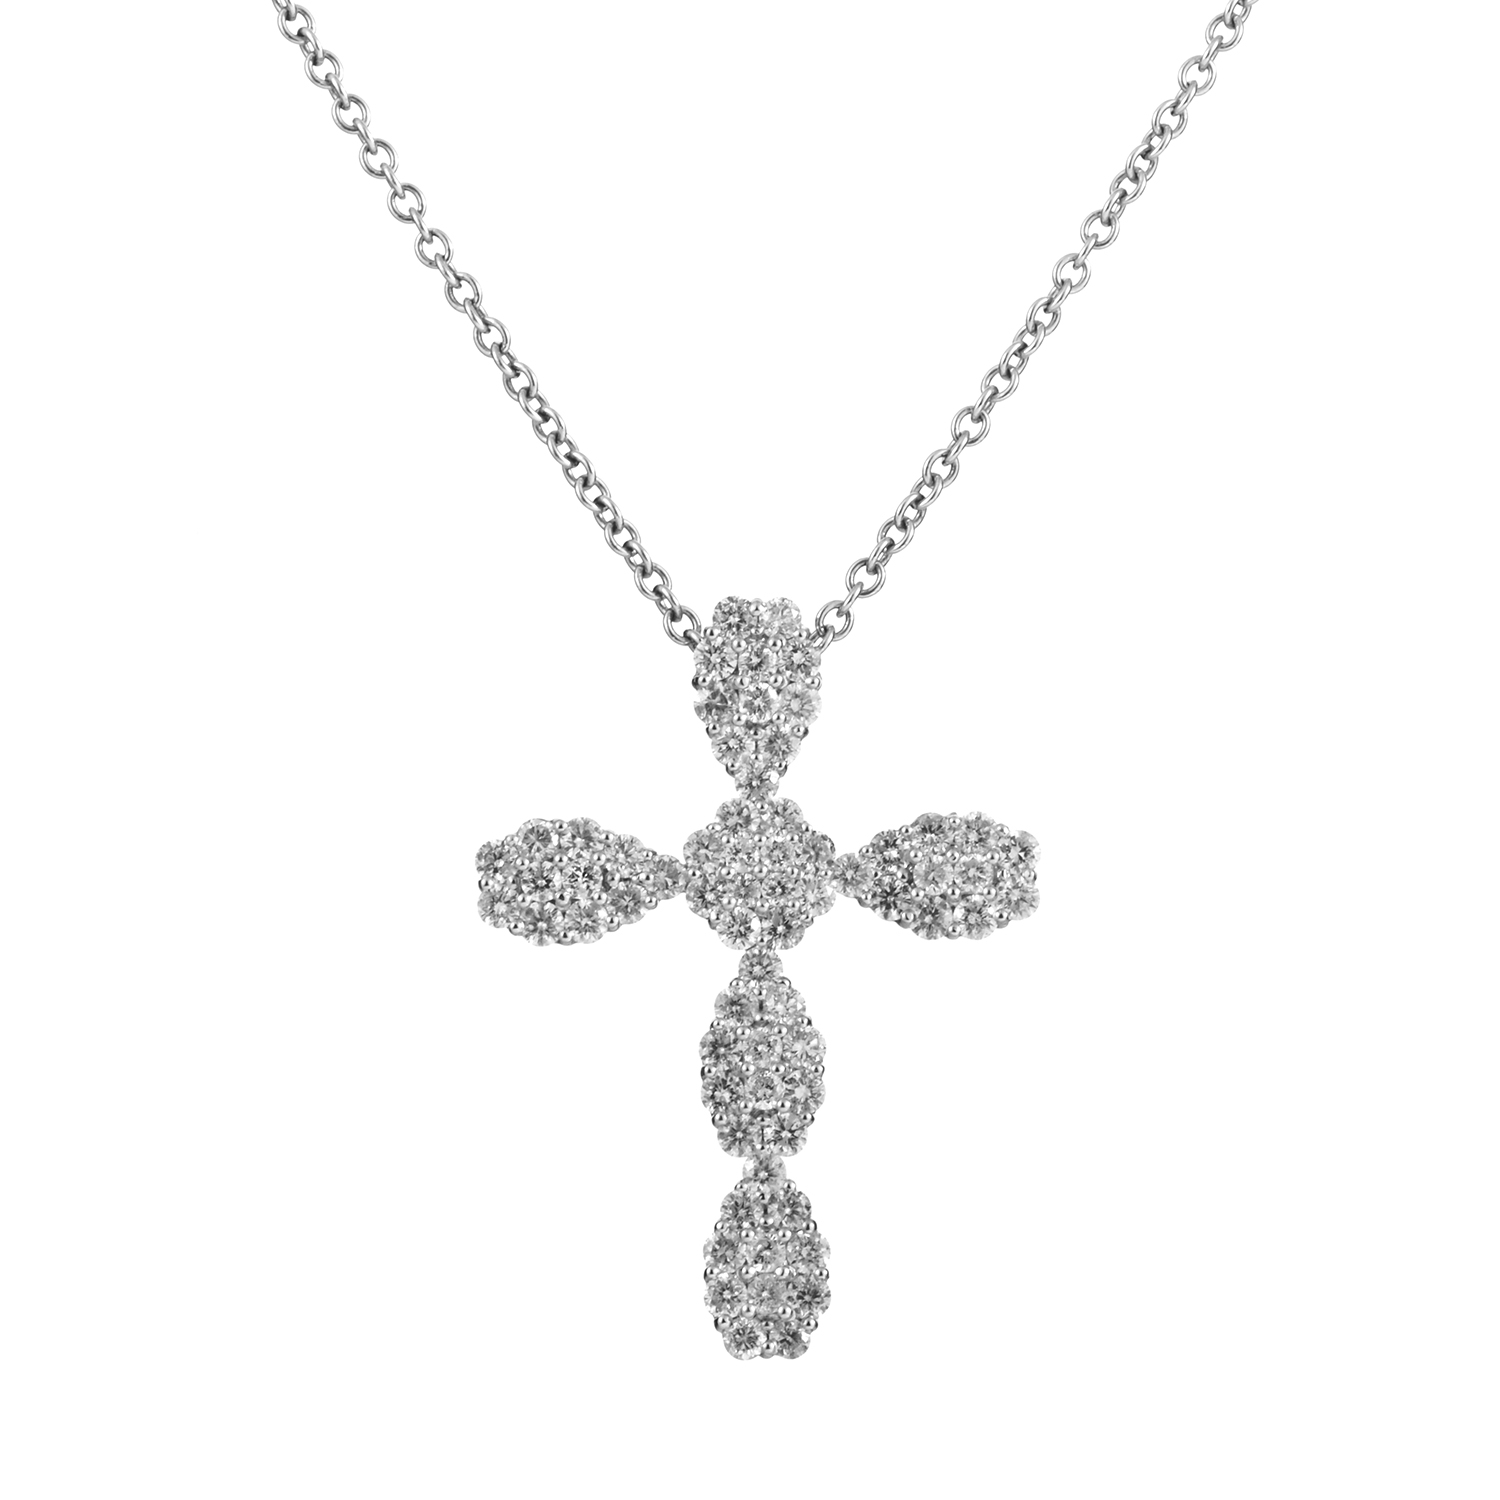 18K White Gold Diamond Pave Cross Pendant Necklace EC-19-031616